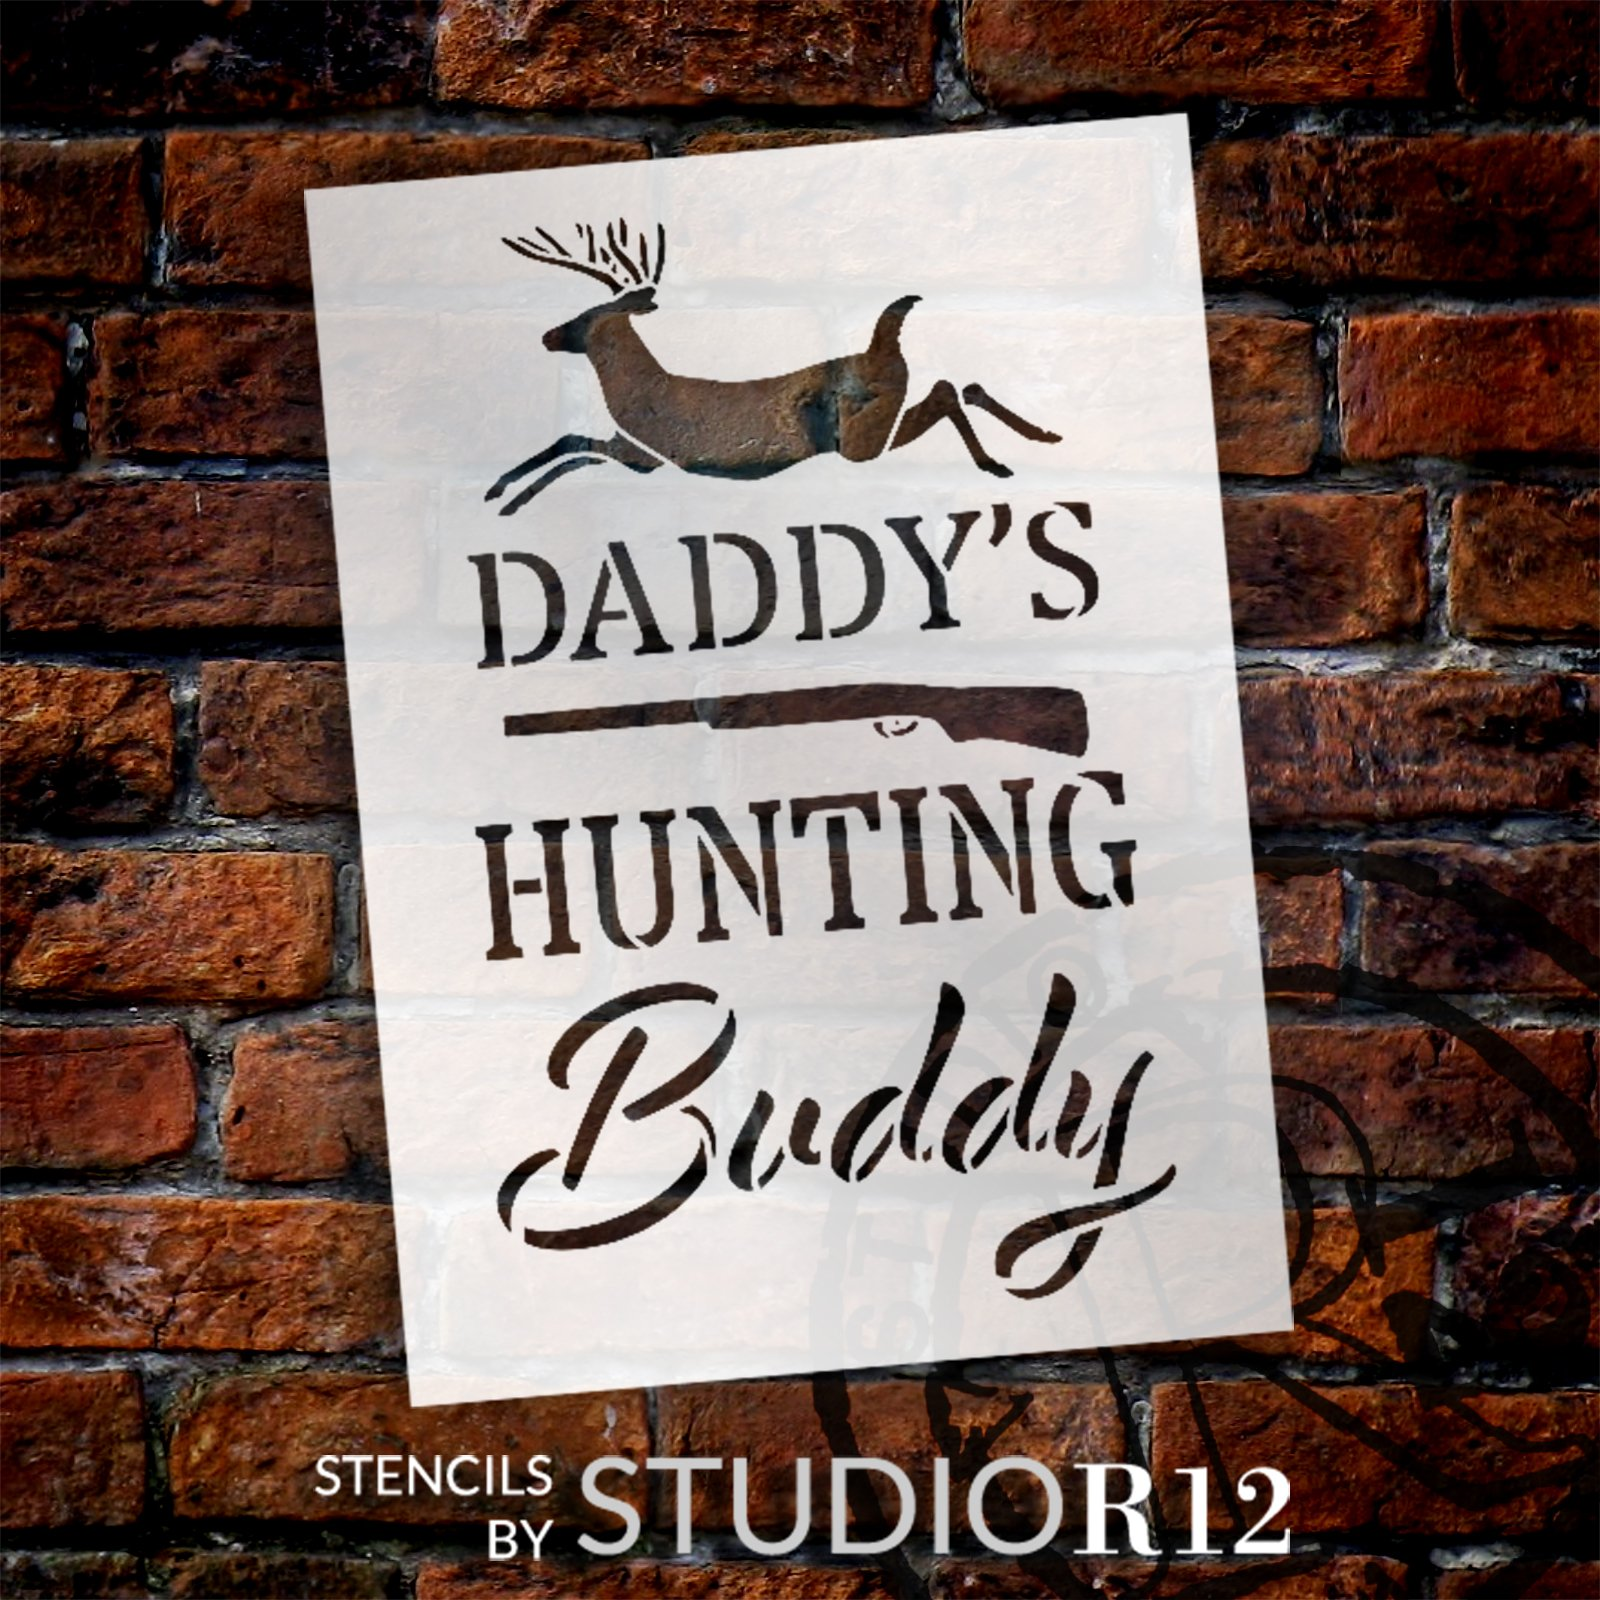 Personalized Hunting Buddy Stencil with Deer by StudioR12   DIY Country Cabin Home Decor   Craft & Paint Wood Signs   Select Size